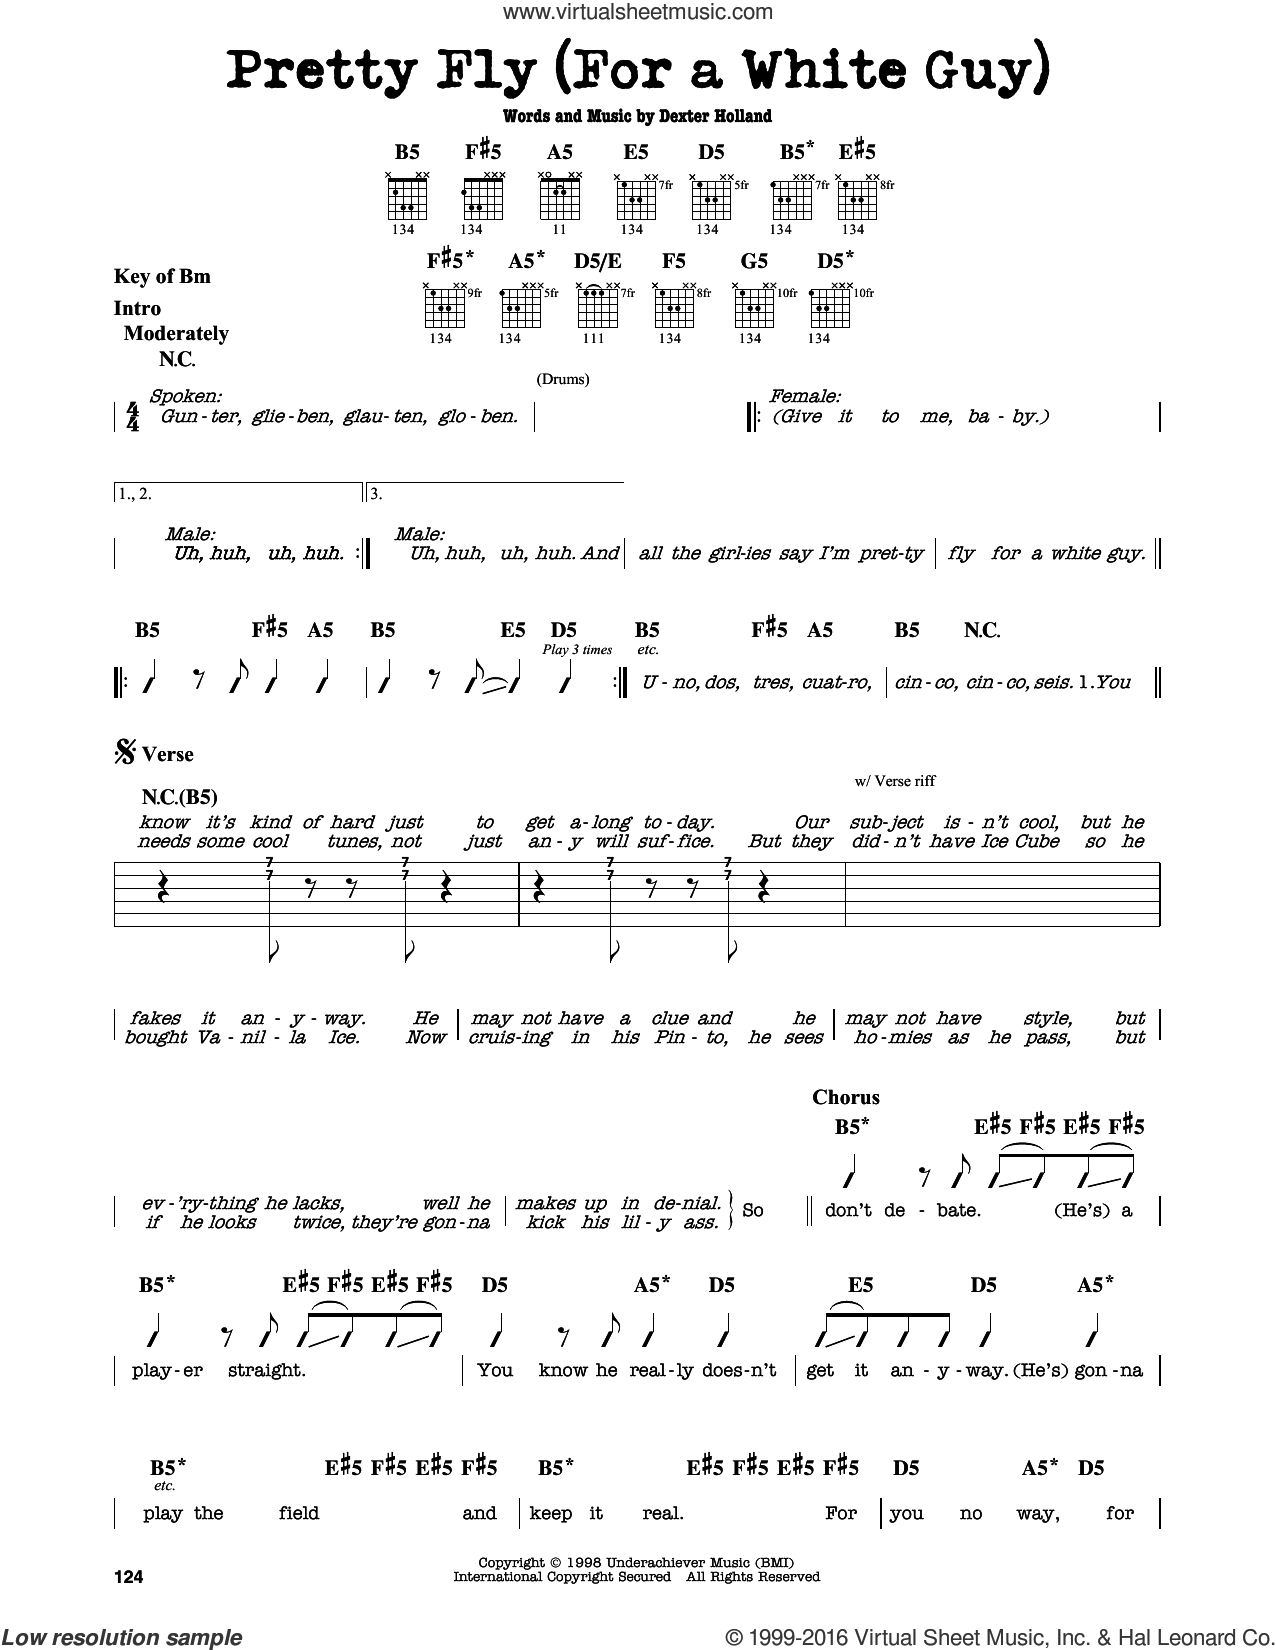 Pretty Fly (For A White Guy) sheet music for guitar solo (lead sheet) by The Offspring, intermediate guitar (lead sheet). Score Image Preview.